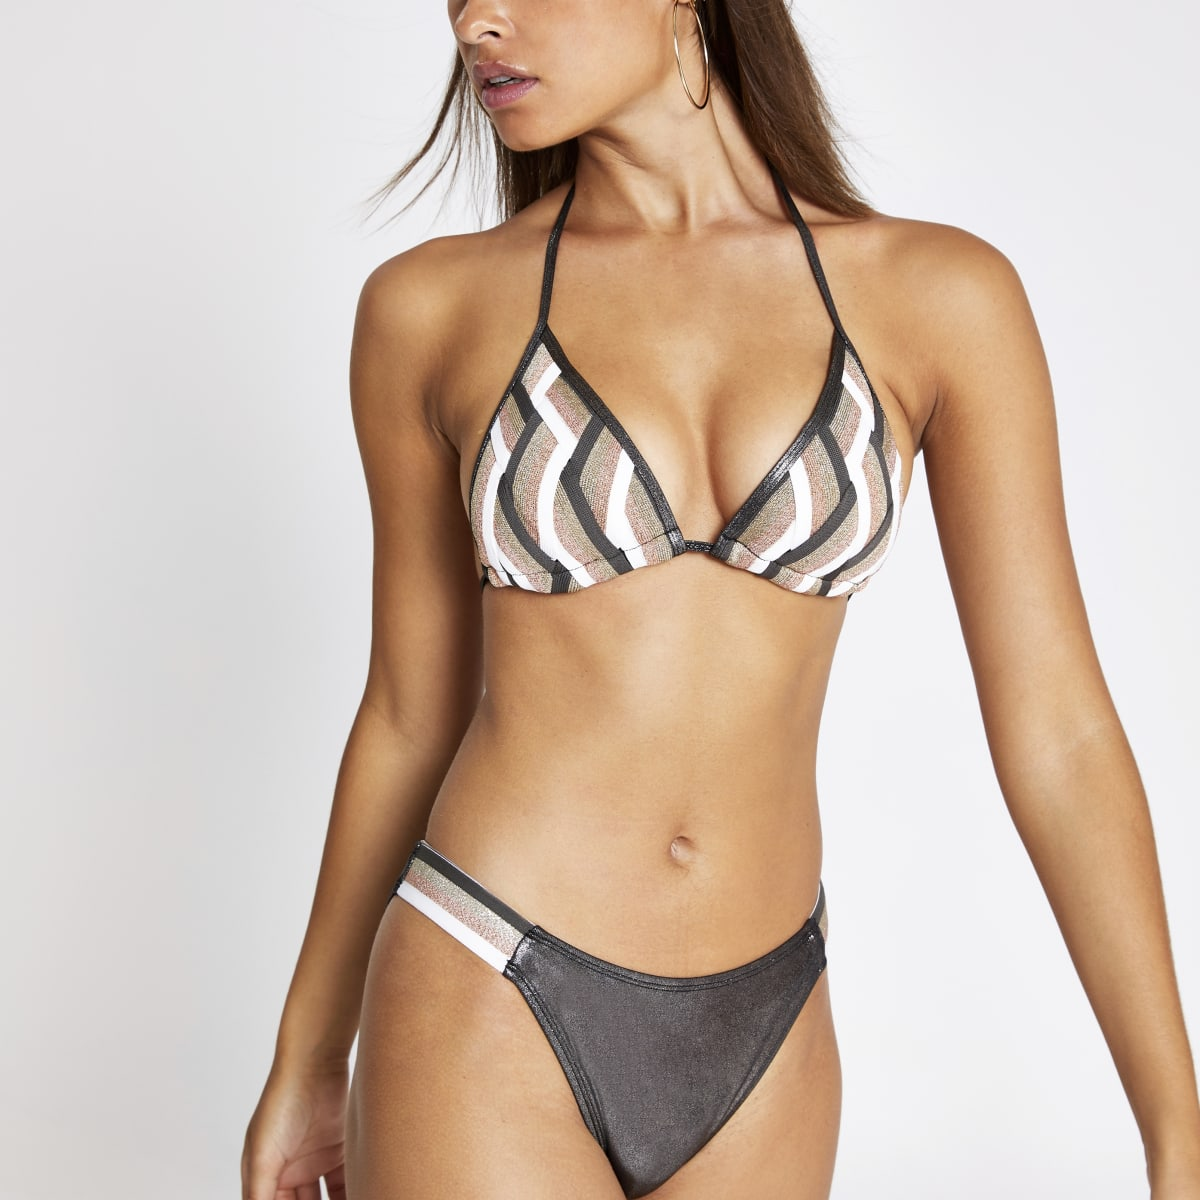 Haut de bikini triangle motif zigzags rose